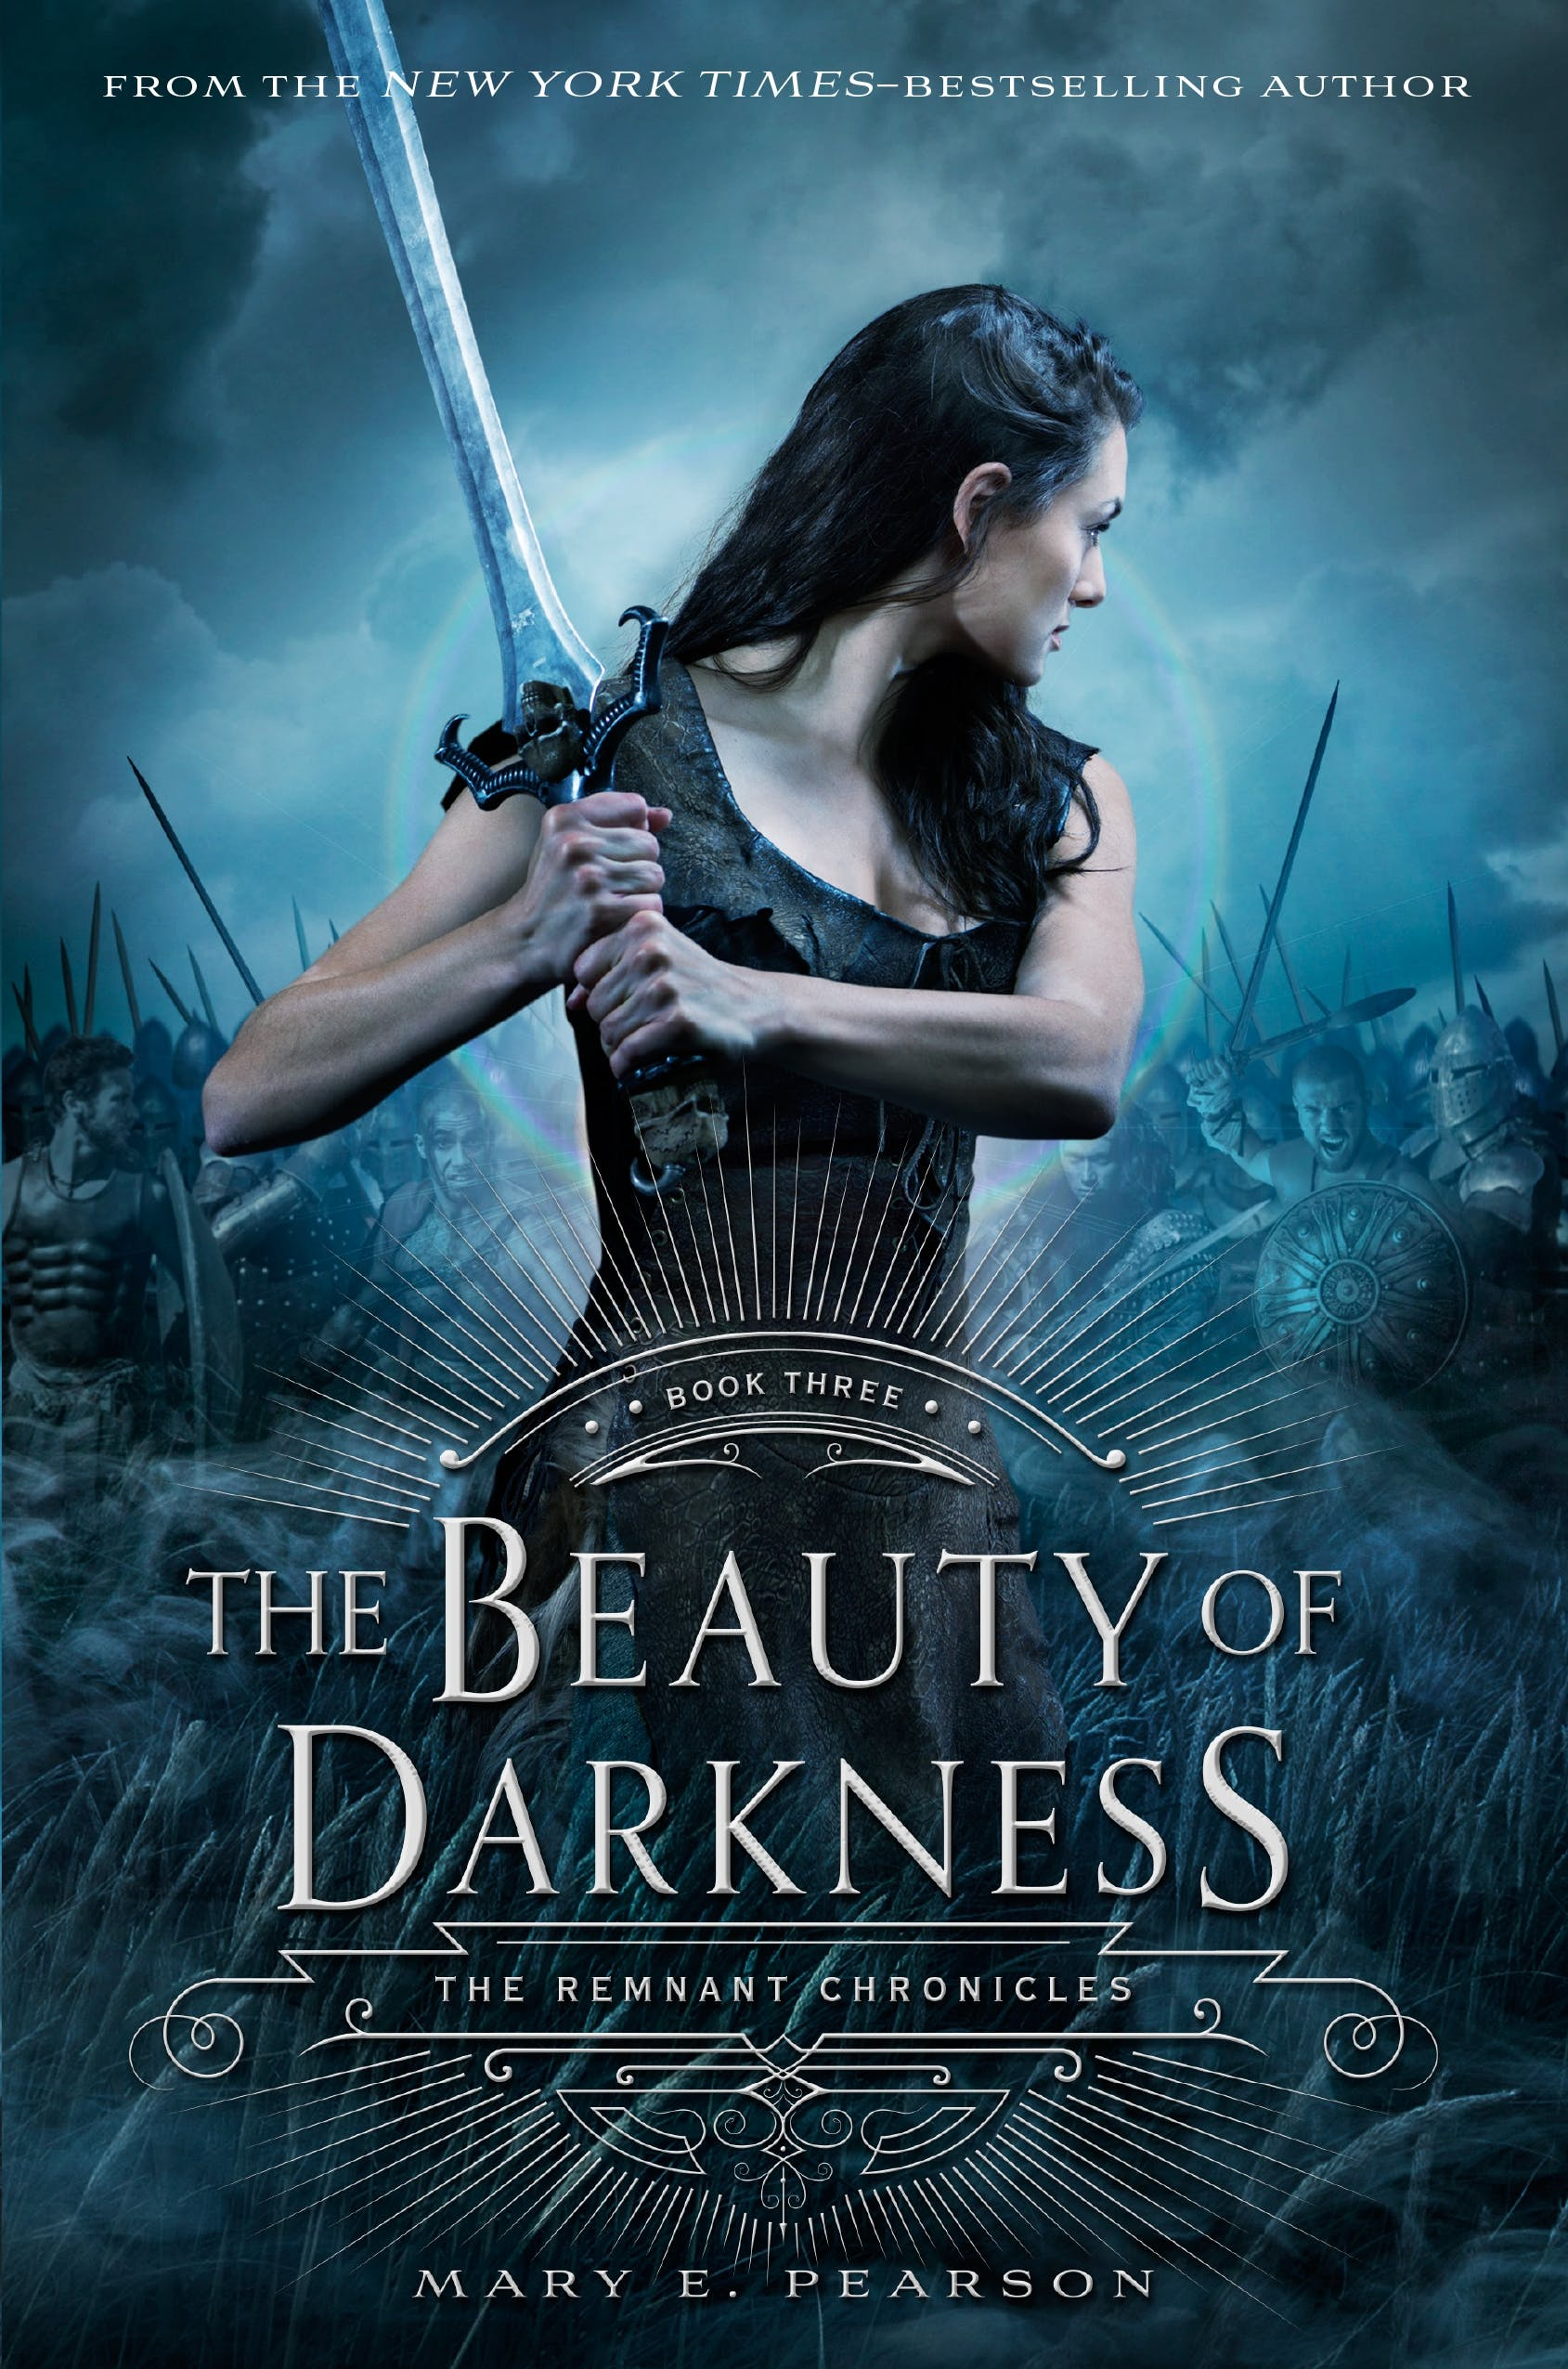 Image of The Beauty of Darkness